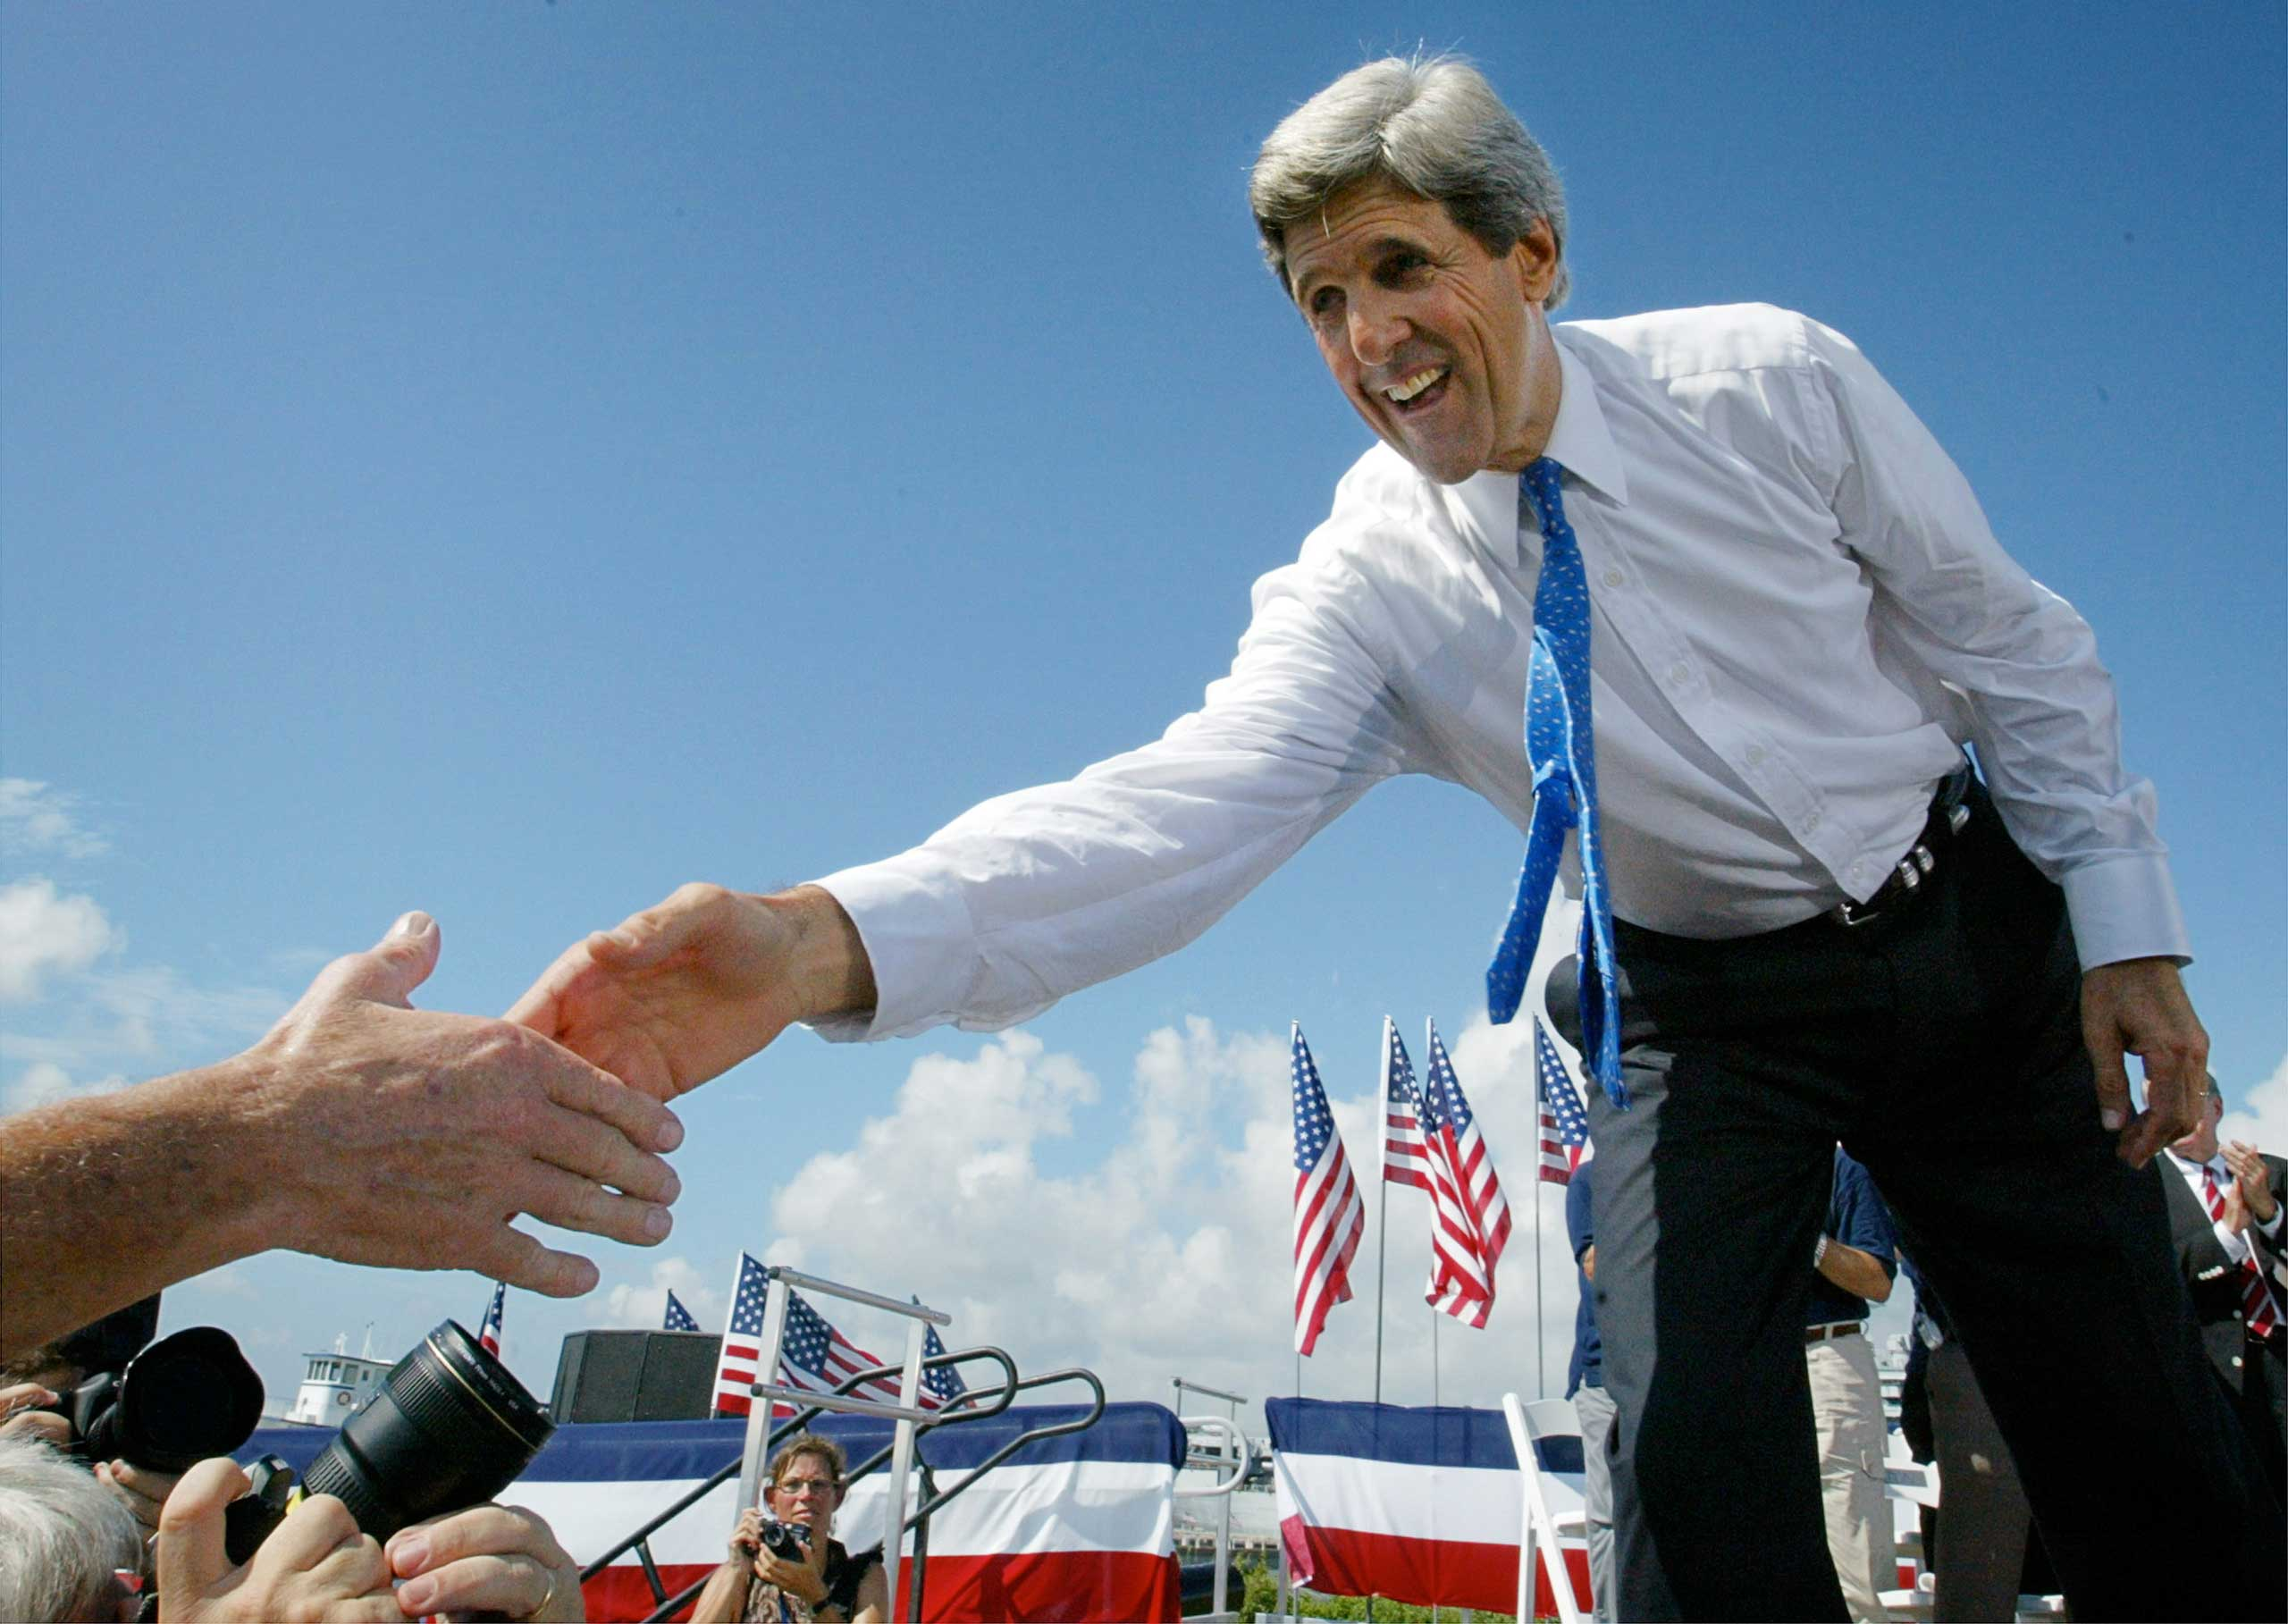 John Kerry launched his presidential campaign on Sept. 2, 2003, in Mt. Pleasant, S.C., with a speech about the Iraq War.